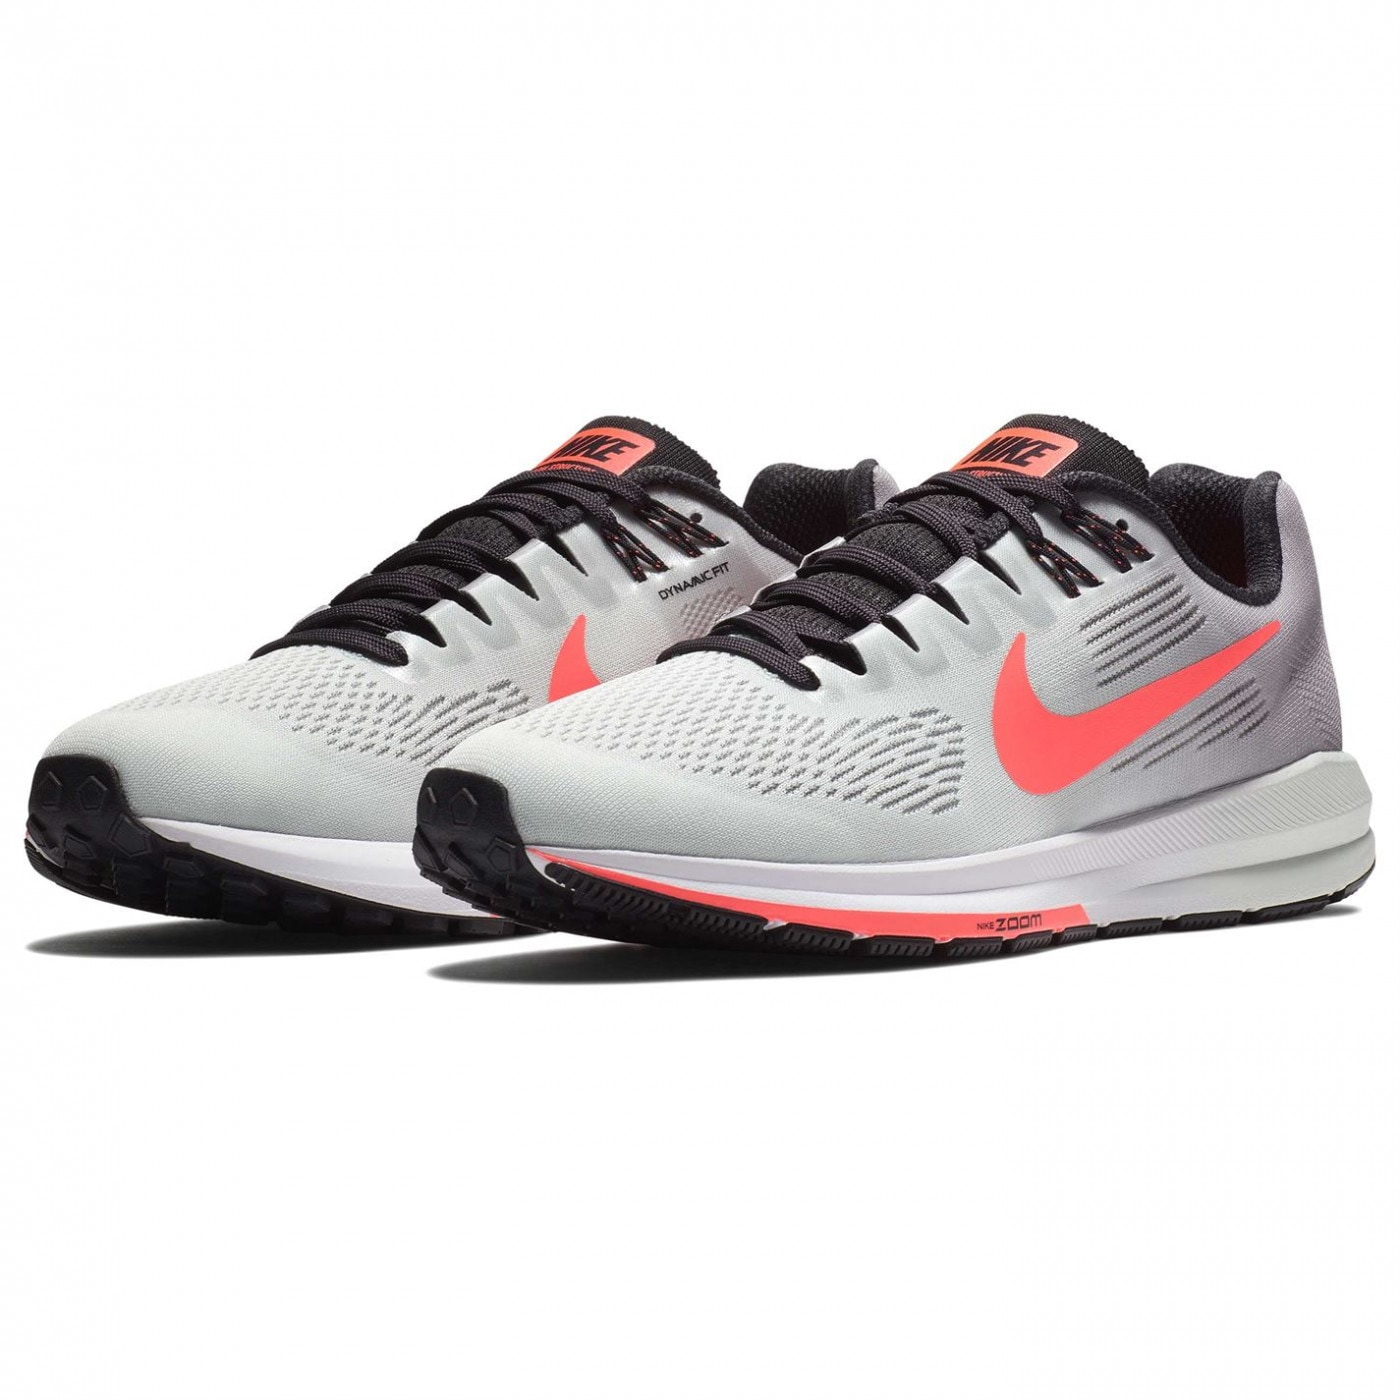 d5c60248b3 Nike Air Zoom Structure 21 Running Shoe - FACTCOOL